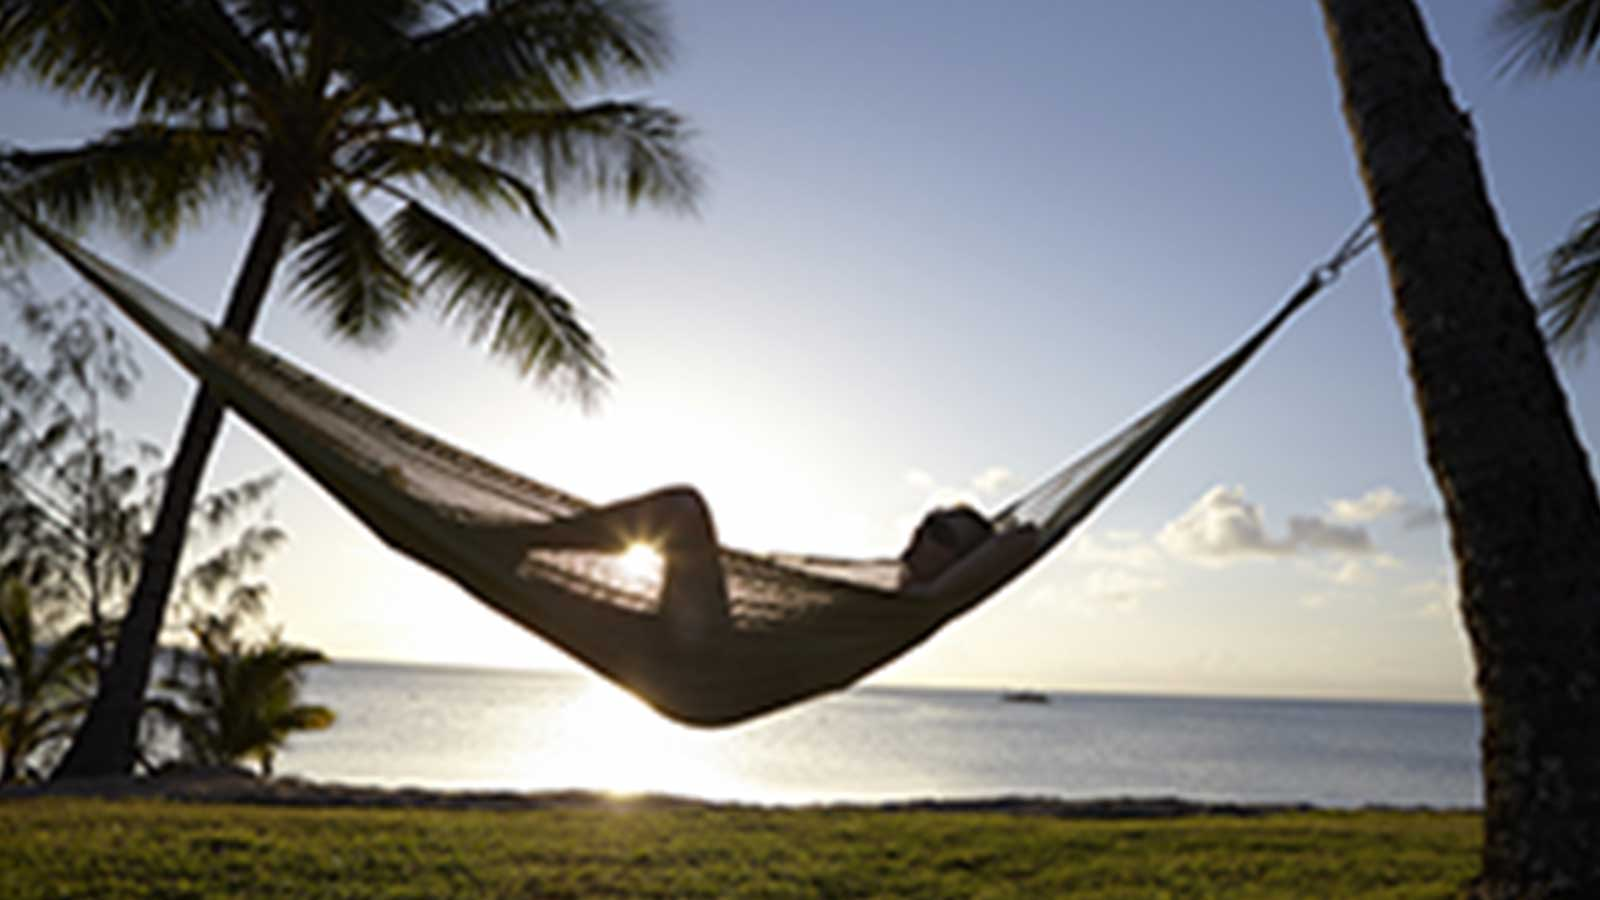 relaxing in hammock at sunset